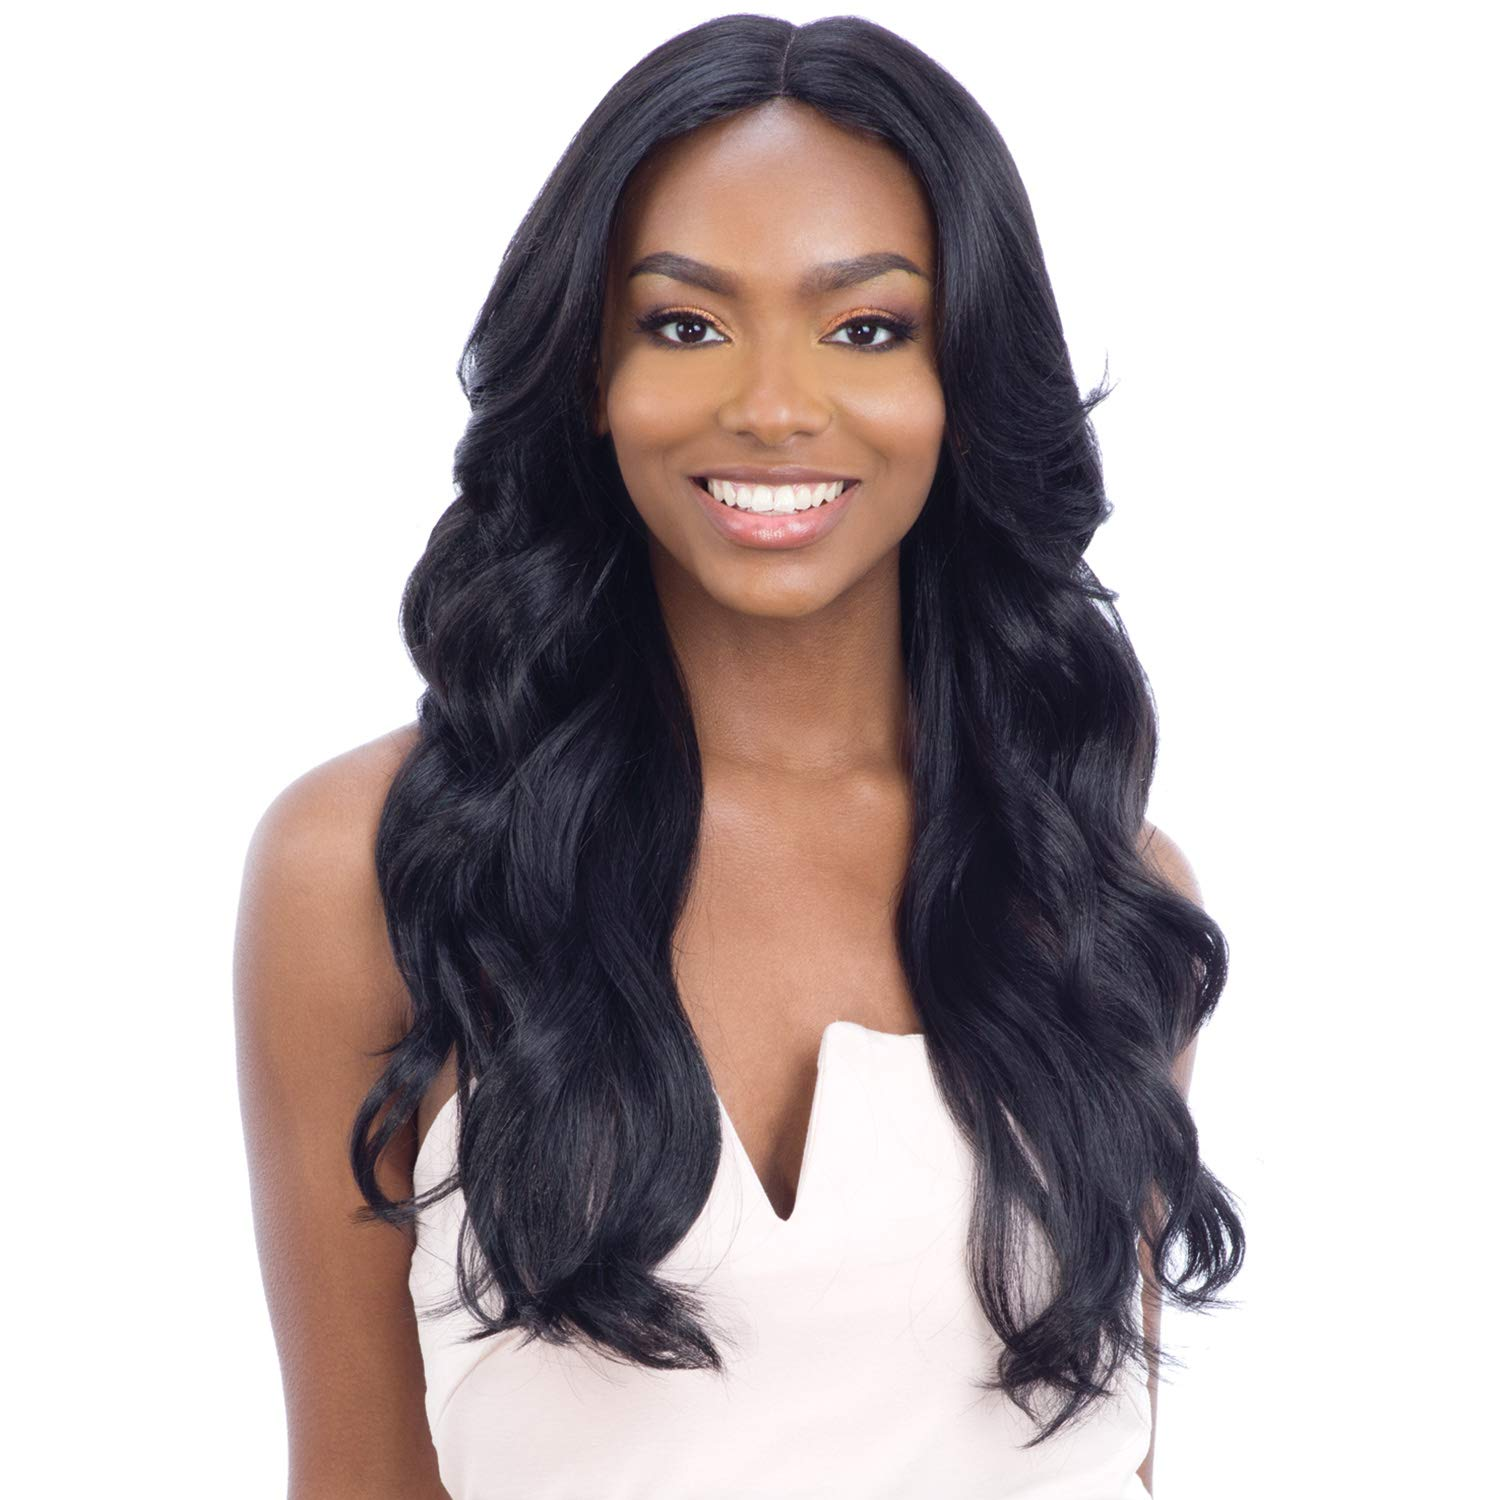 Freetress Equal Synthetic Hair 5 Inch Lace Part Wig for Black Women - VIVIA (1B)